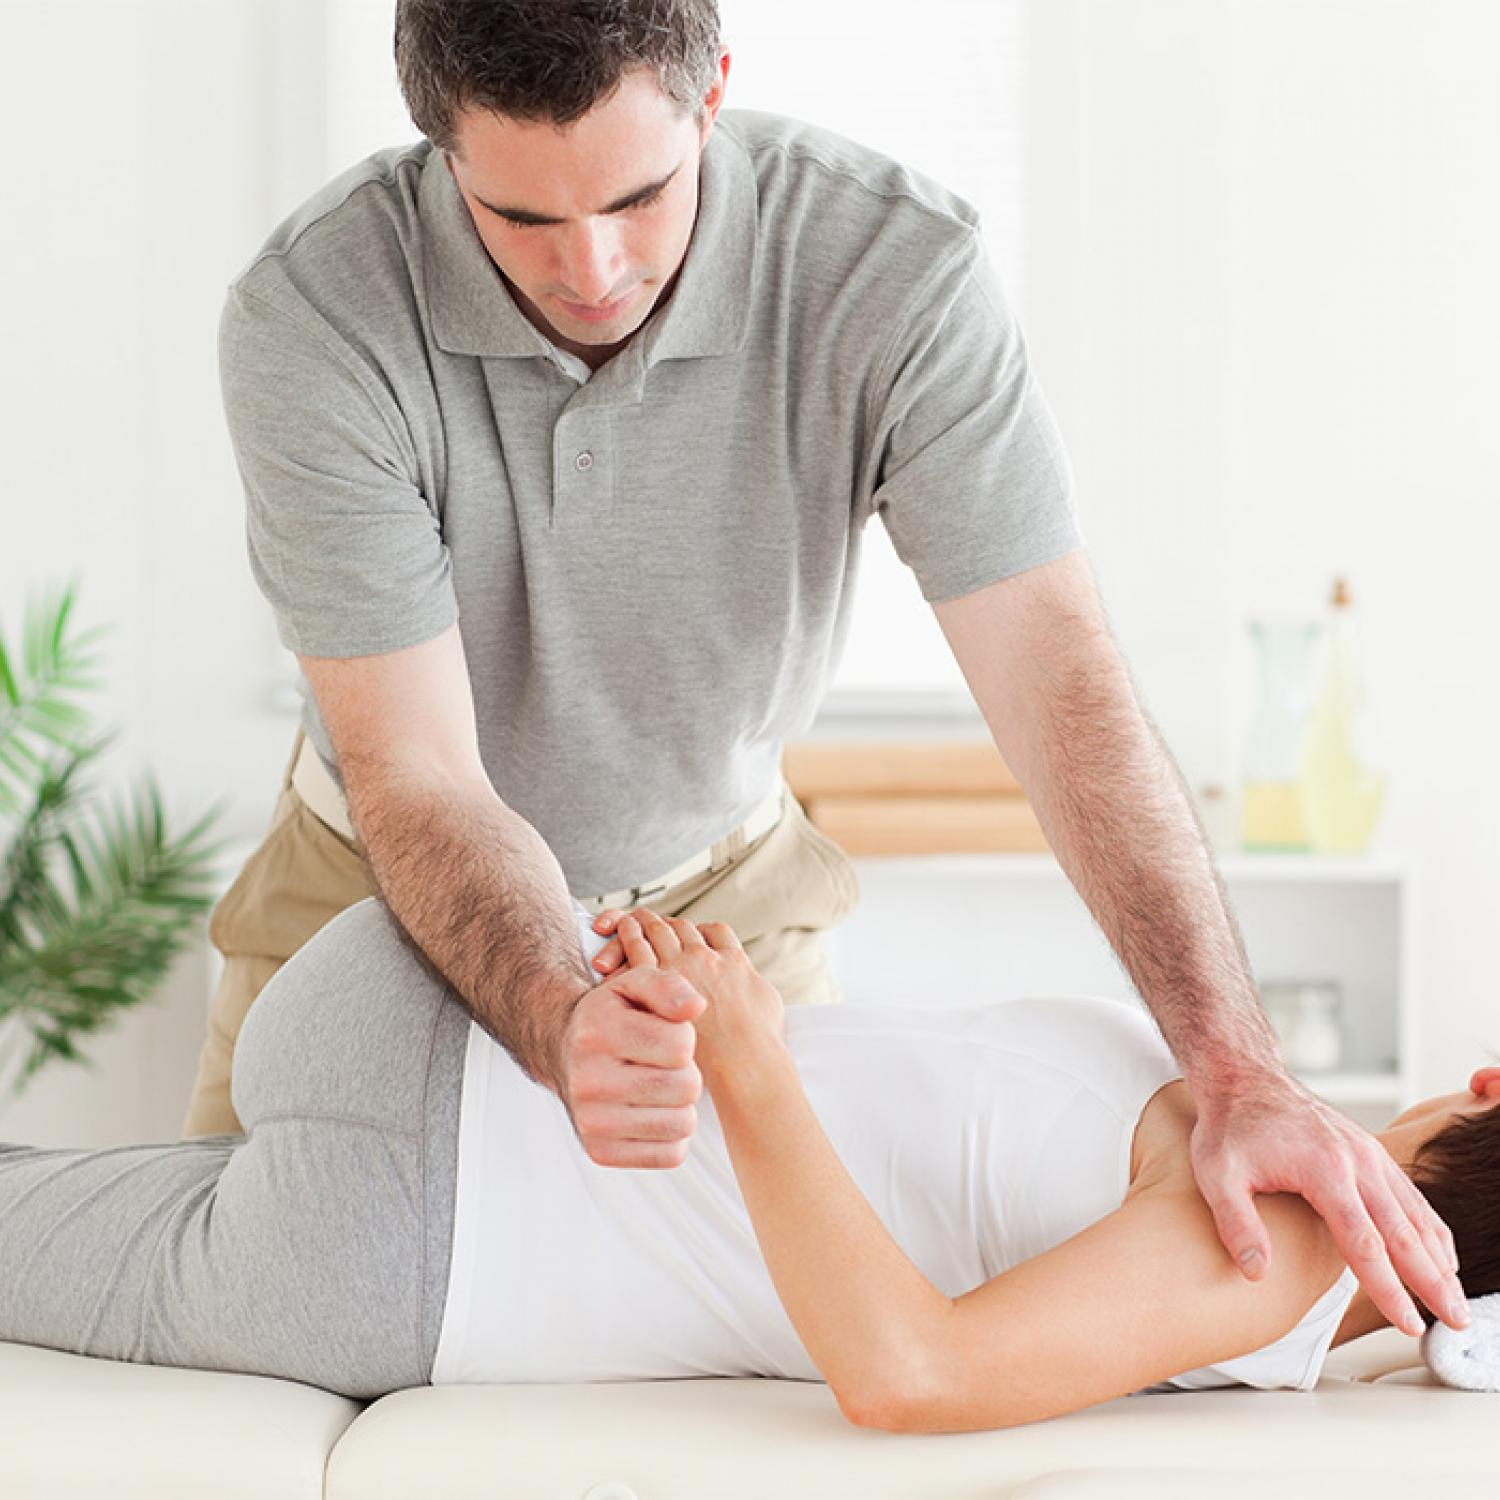 Effectiveness of Chiropractic